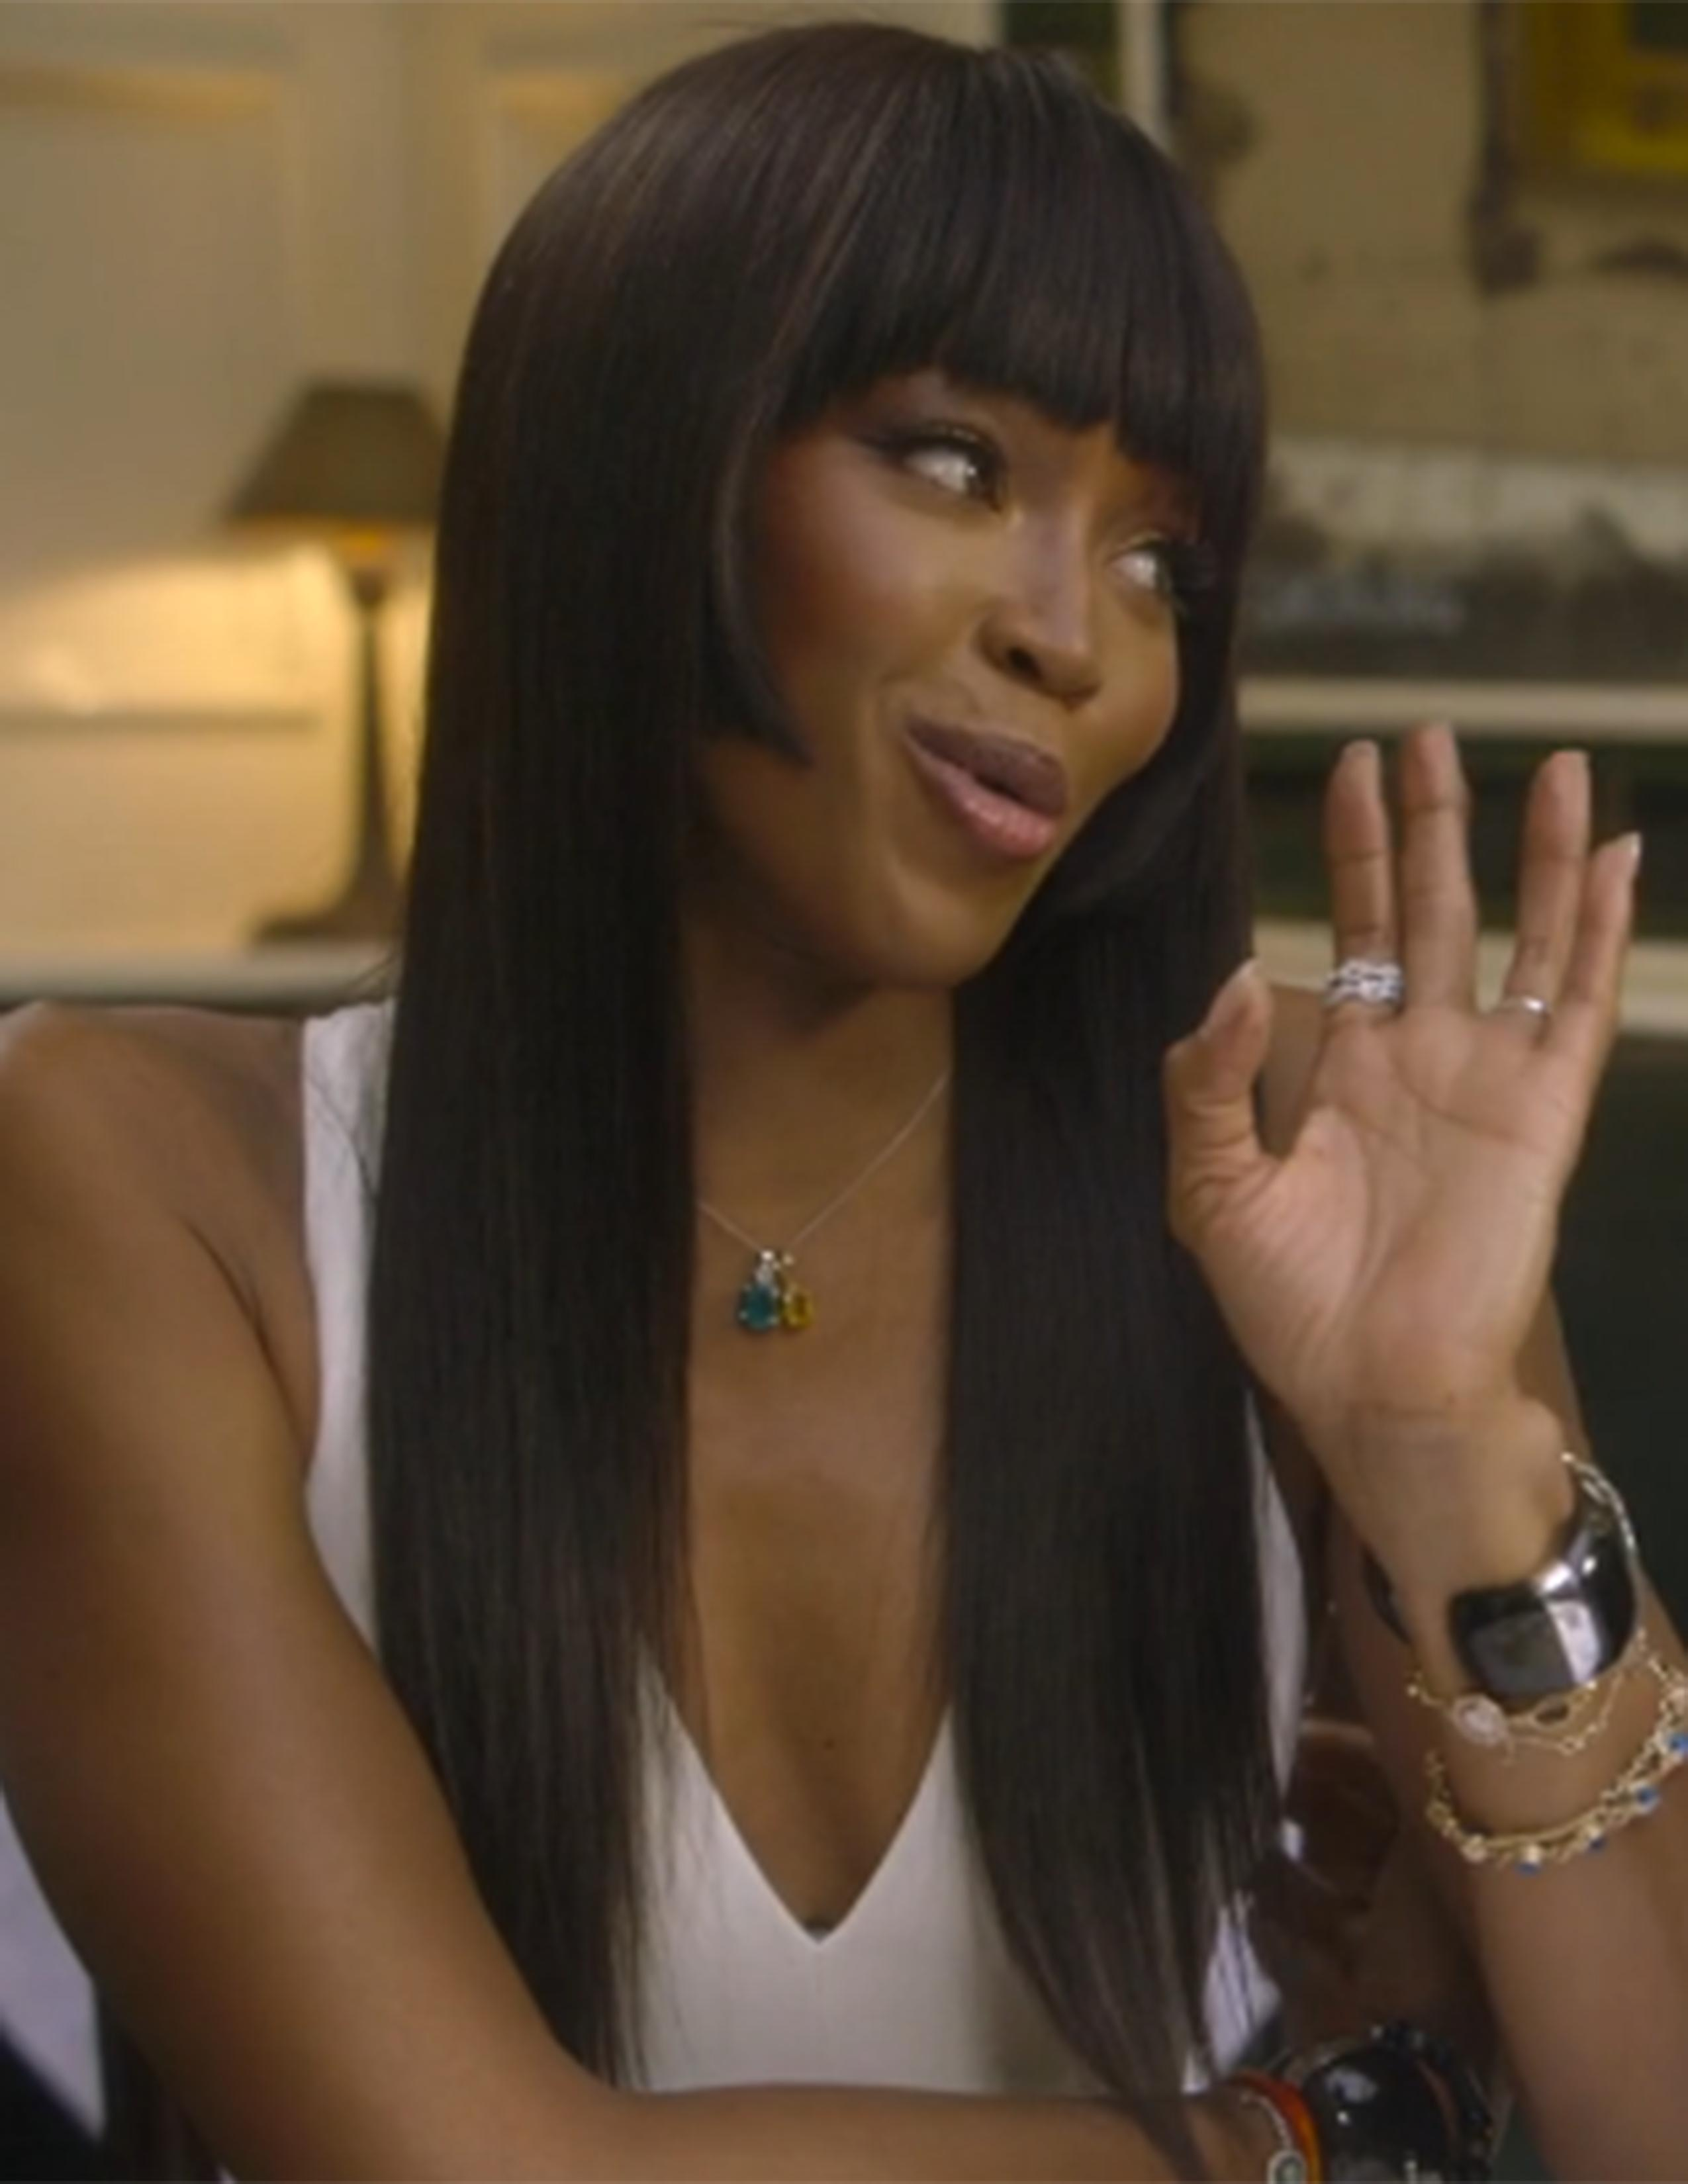 Naomi campbell free videos watch download and enjoy photo 2